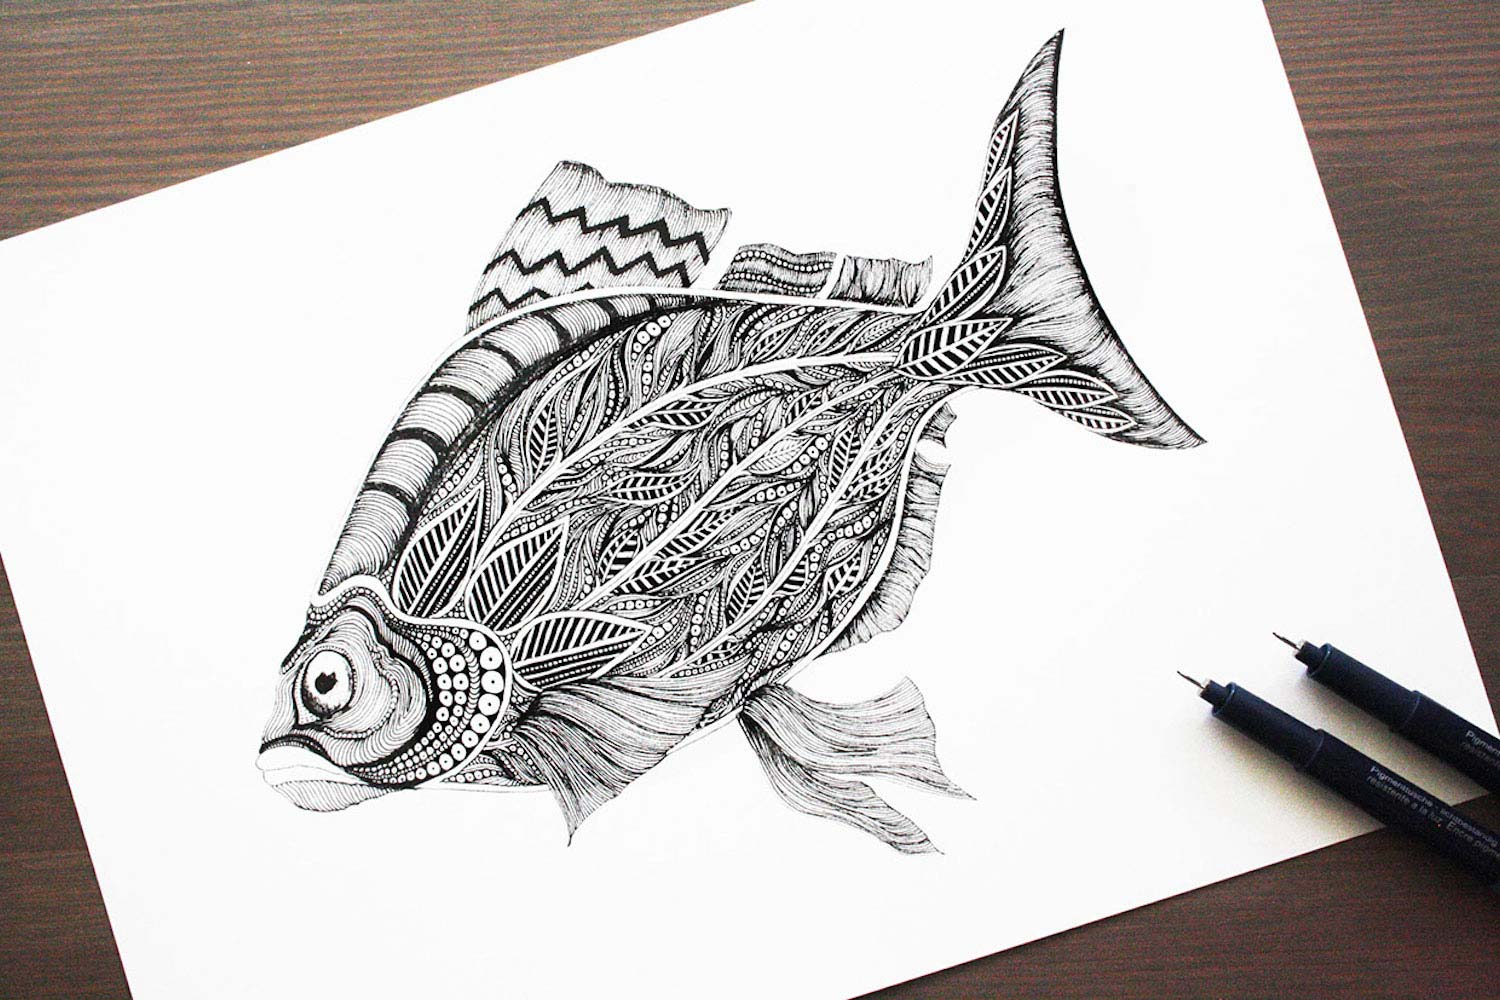 Ornamental Fish by Meni Chatzipanagiotou